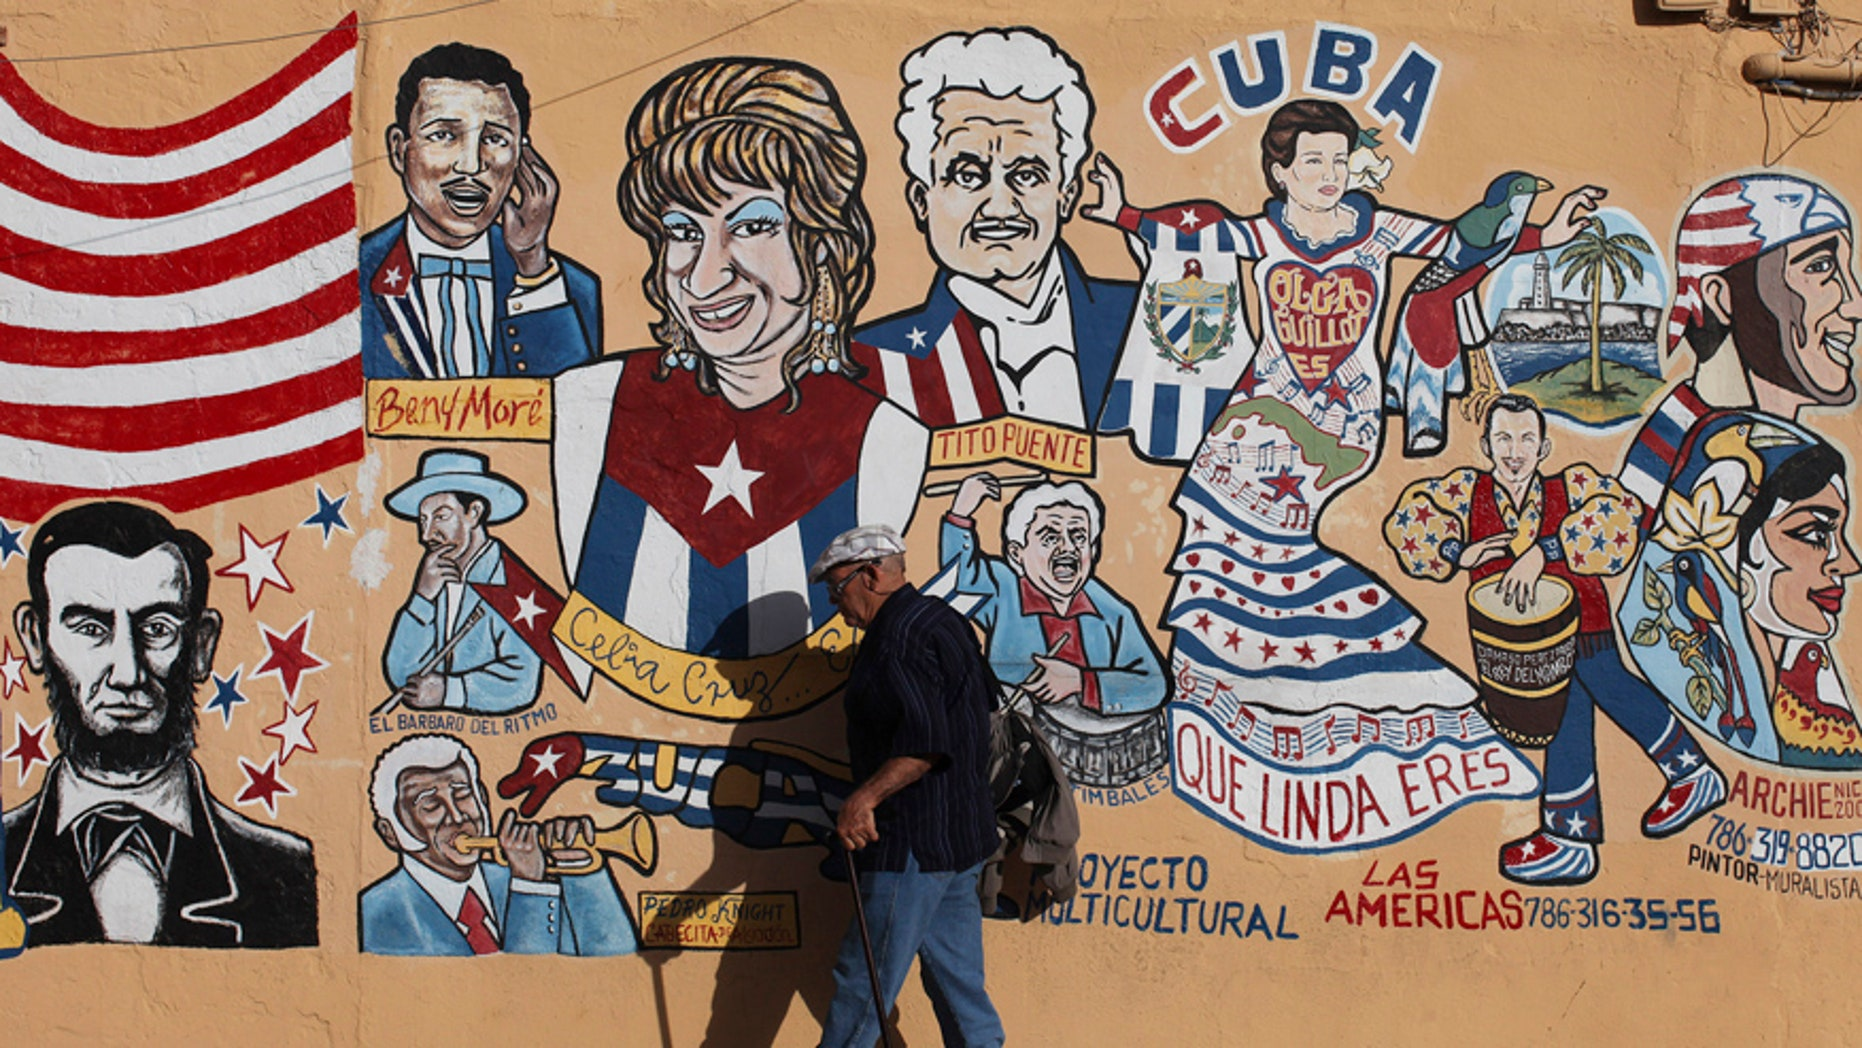 A man walks by a mural in the Little Havana neighborhood of Miami, Florida January 26, 2012. Florida Republicans will go to the polls on January 31 to choose among the party's candidates hoping to challenge President Barack Obama in the November general election. Hispanics and non-Hispanic blacks each make up about 13 percent of Florida's registered voters, while non-Hispanic whites account for 68 percent.  REUTERS/Shannon Stapleton (UNITED STATES - Tags: POLITICS ELECTIONS SOCIETY) - RTR2WX03